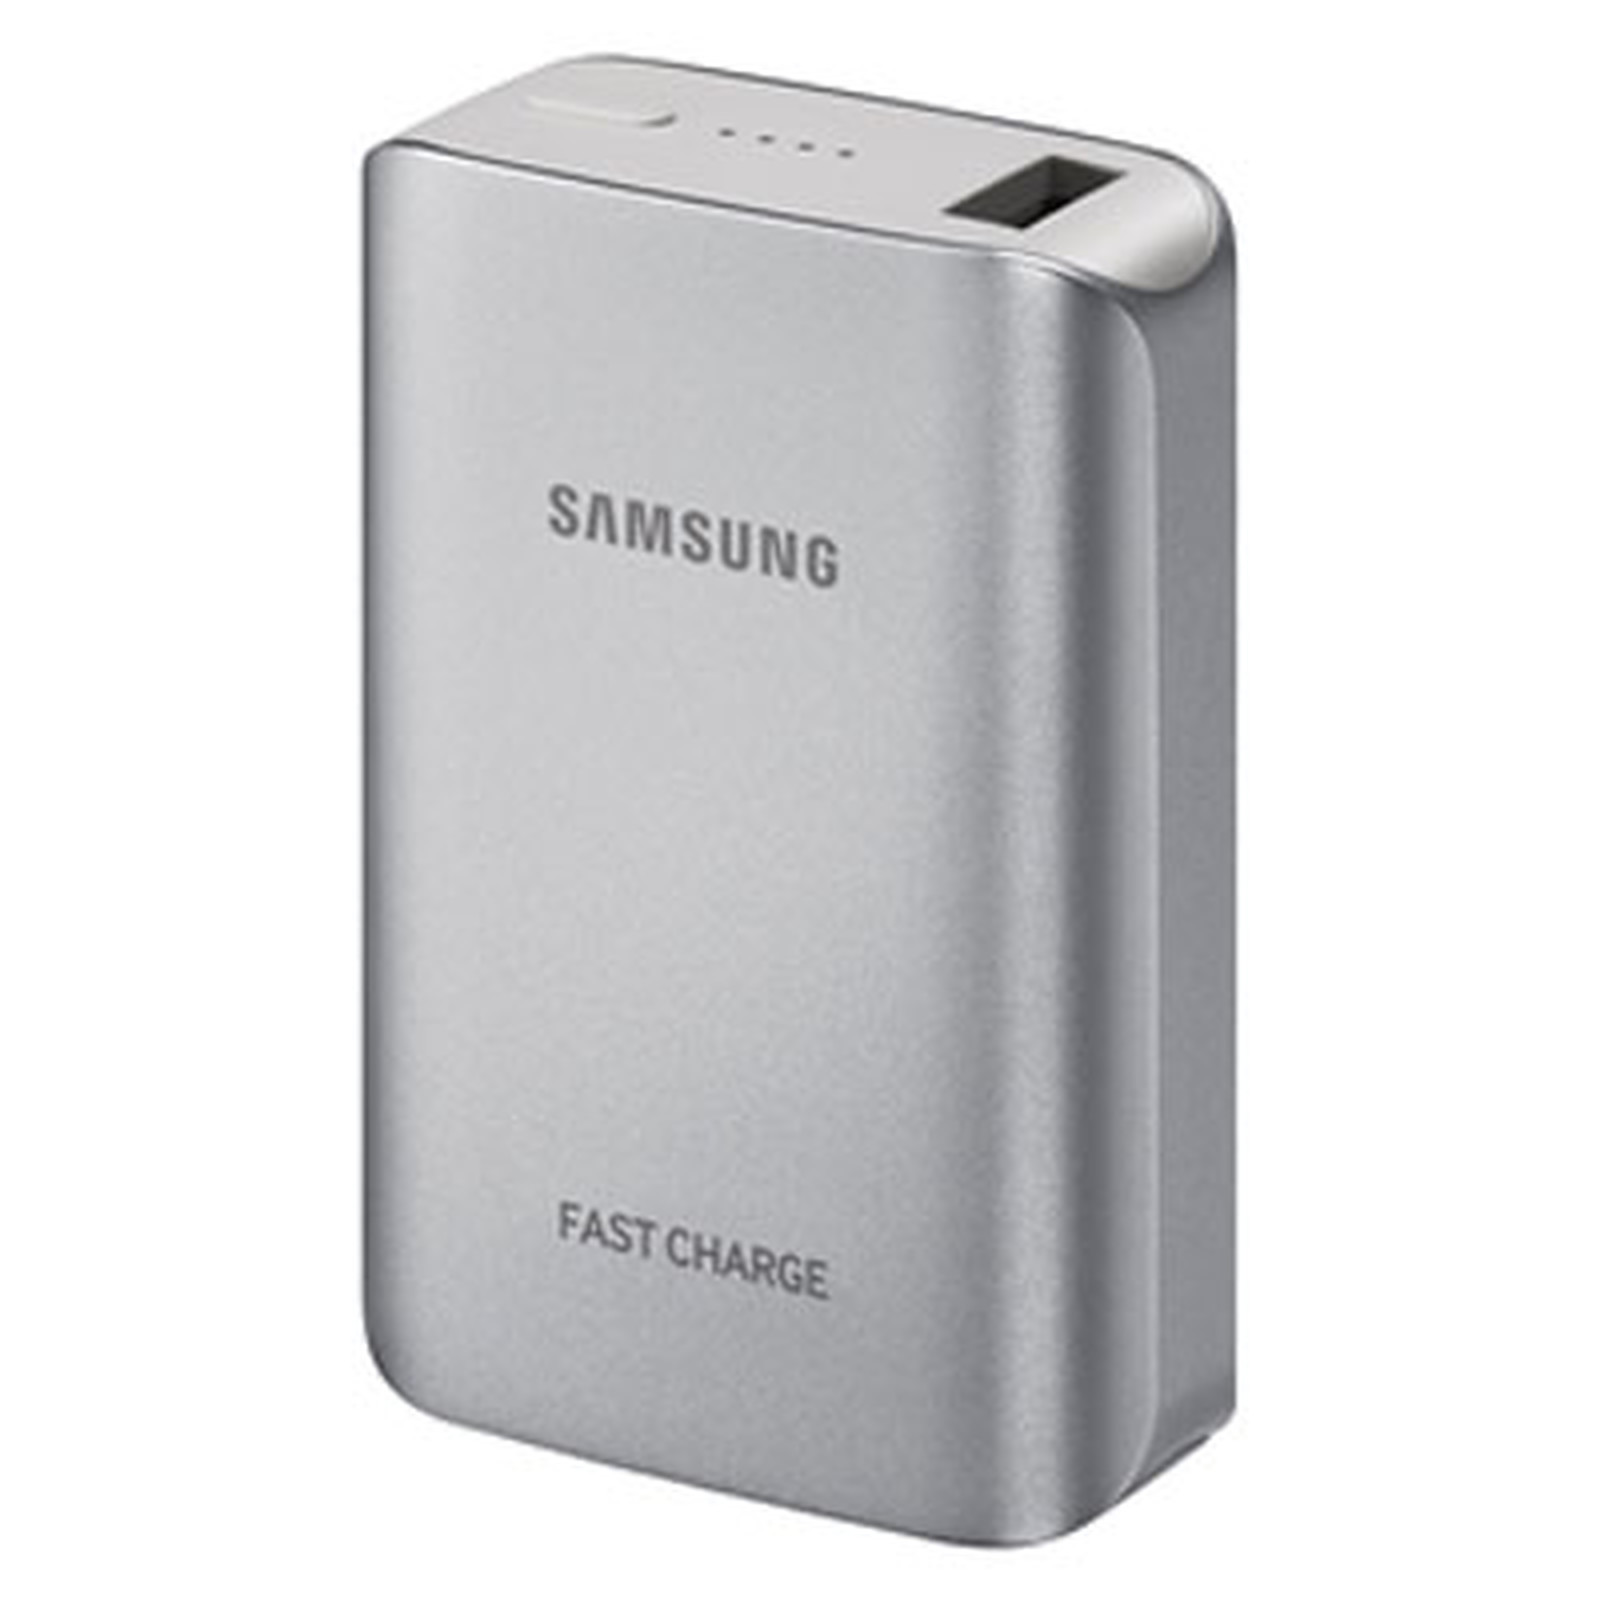 Samsung PowerBank Fast Charge Plateado